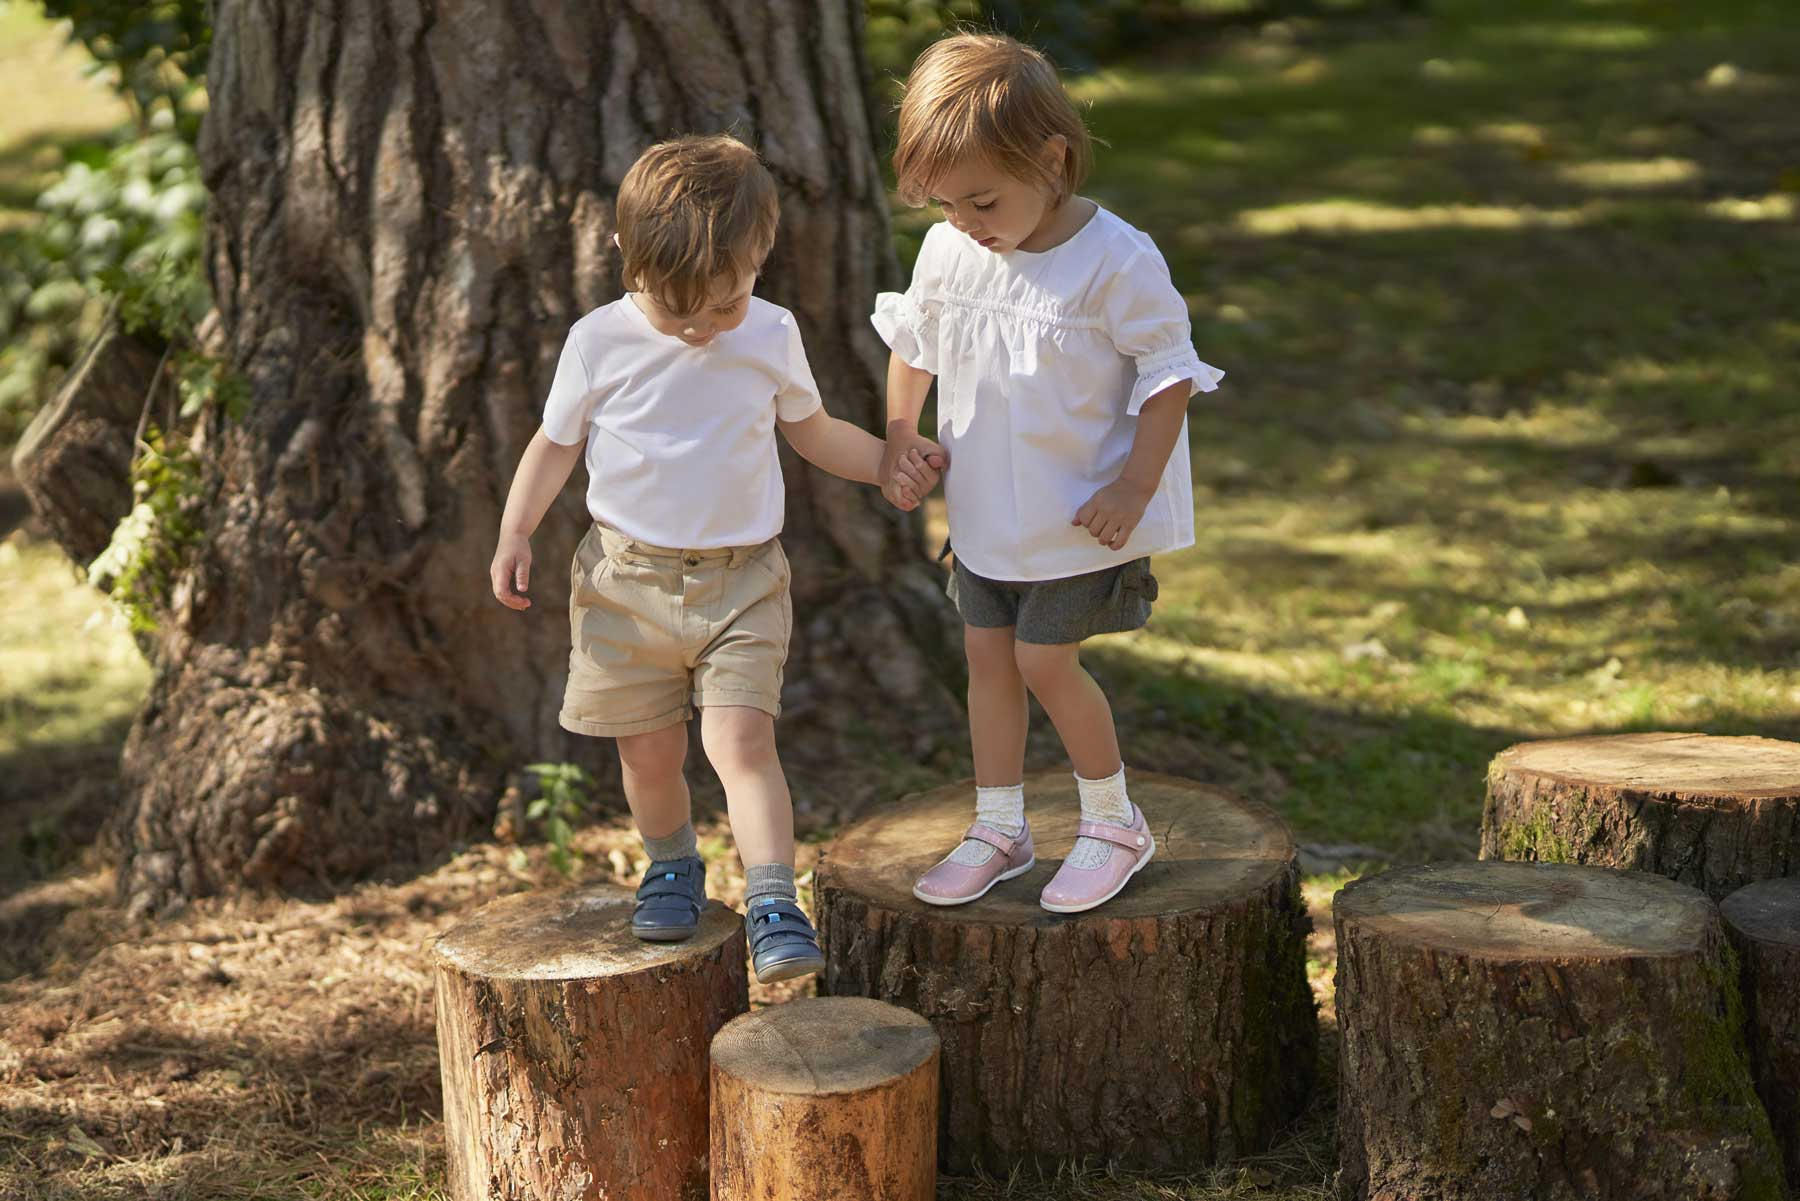 Girl and Boy on Logs